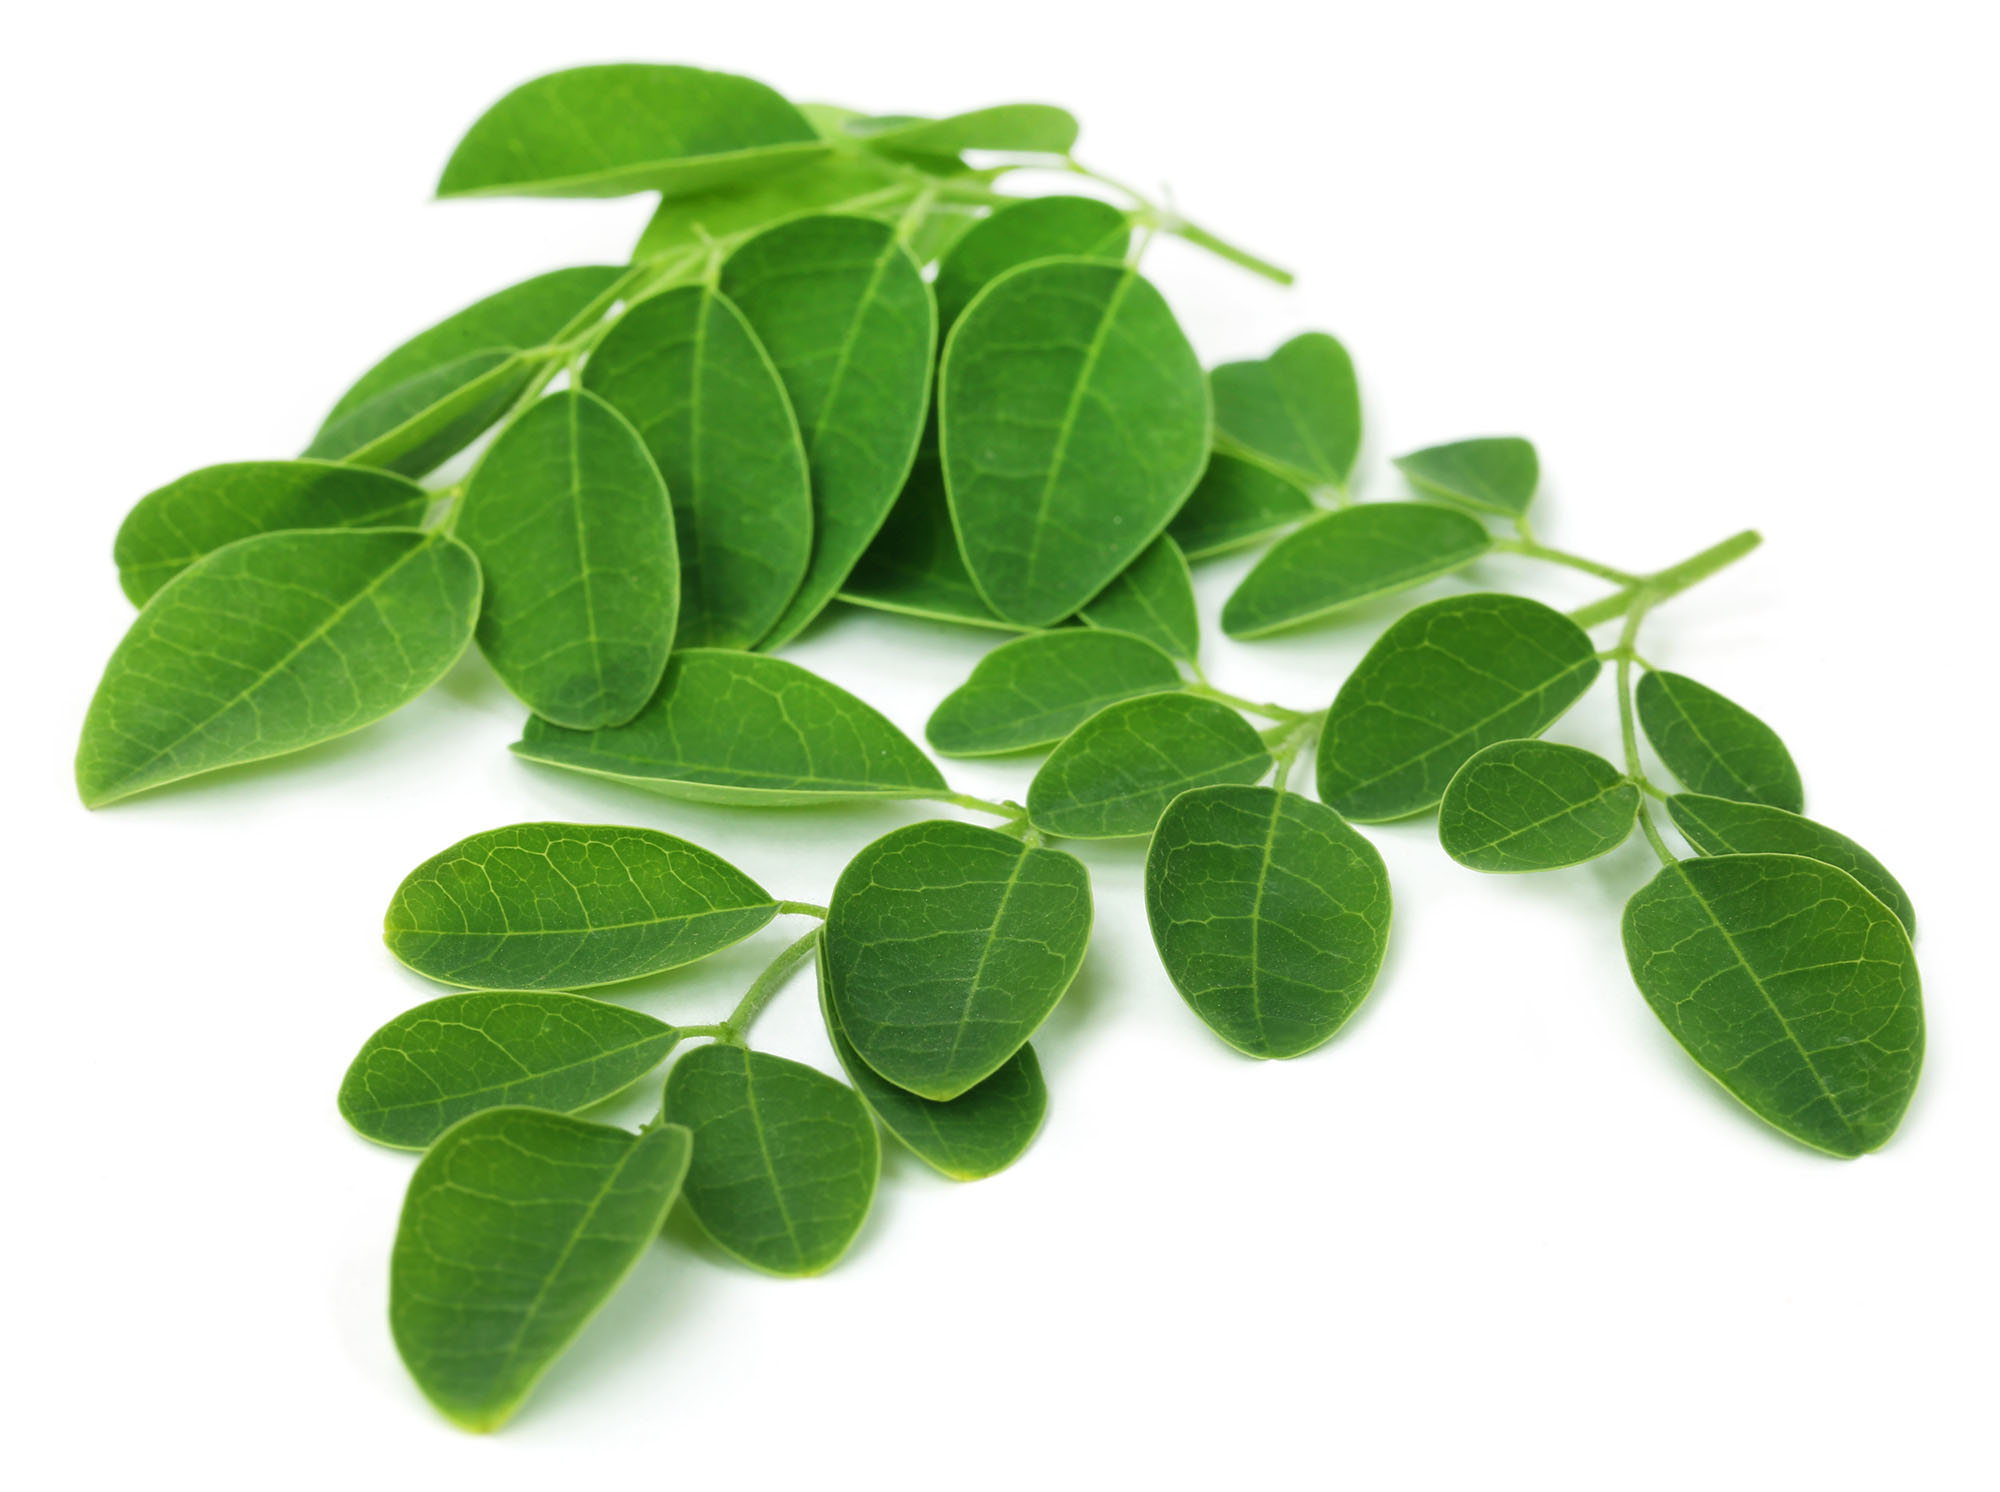 10 Reasons why you should drink Moringa Tea